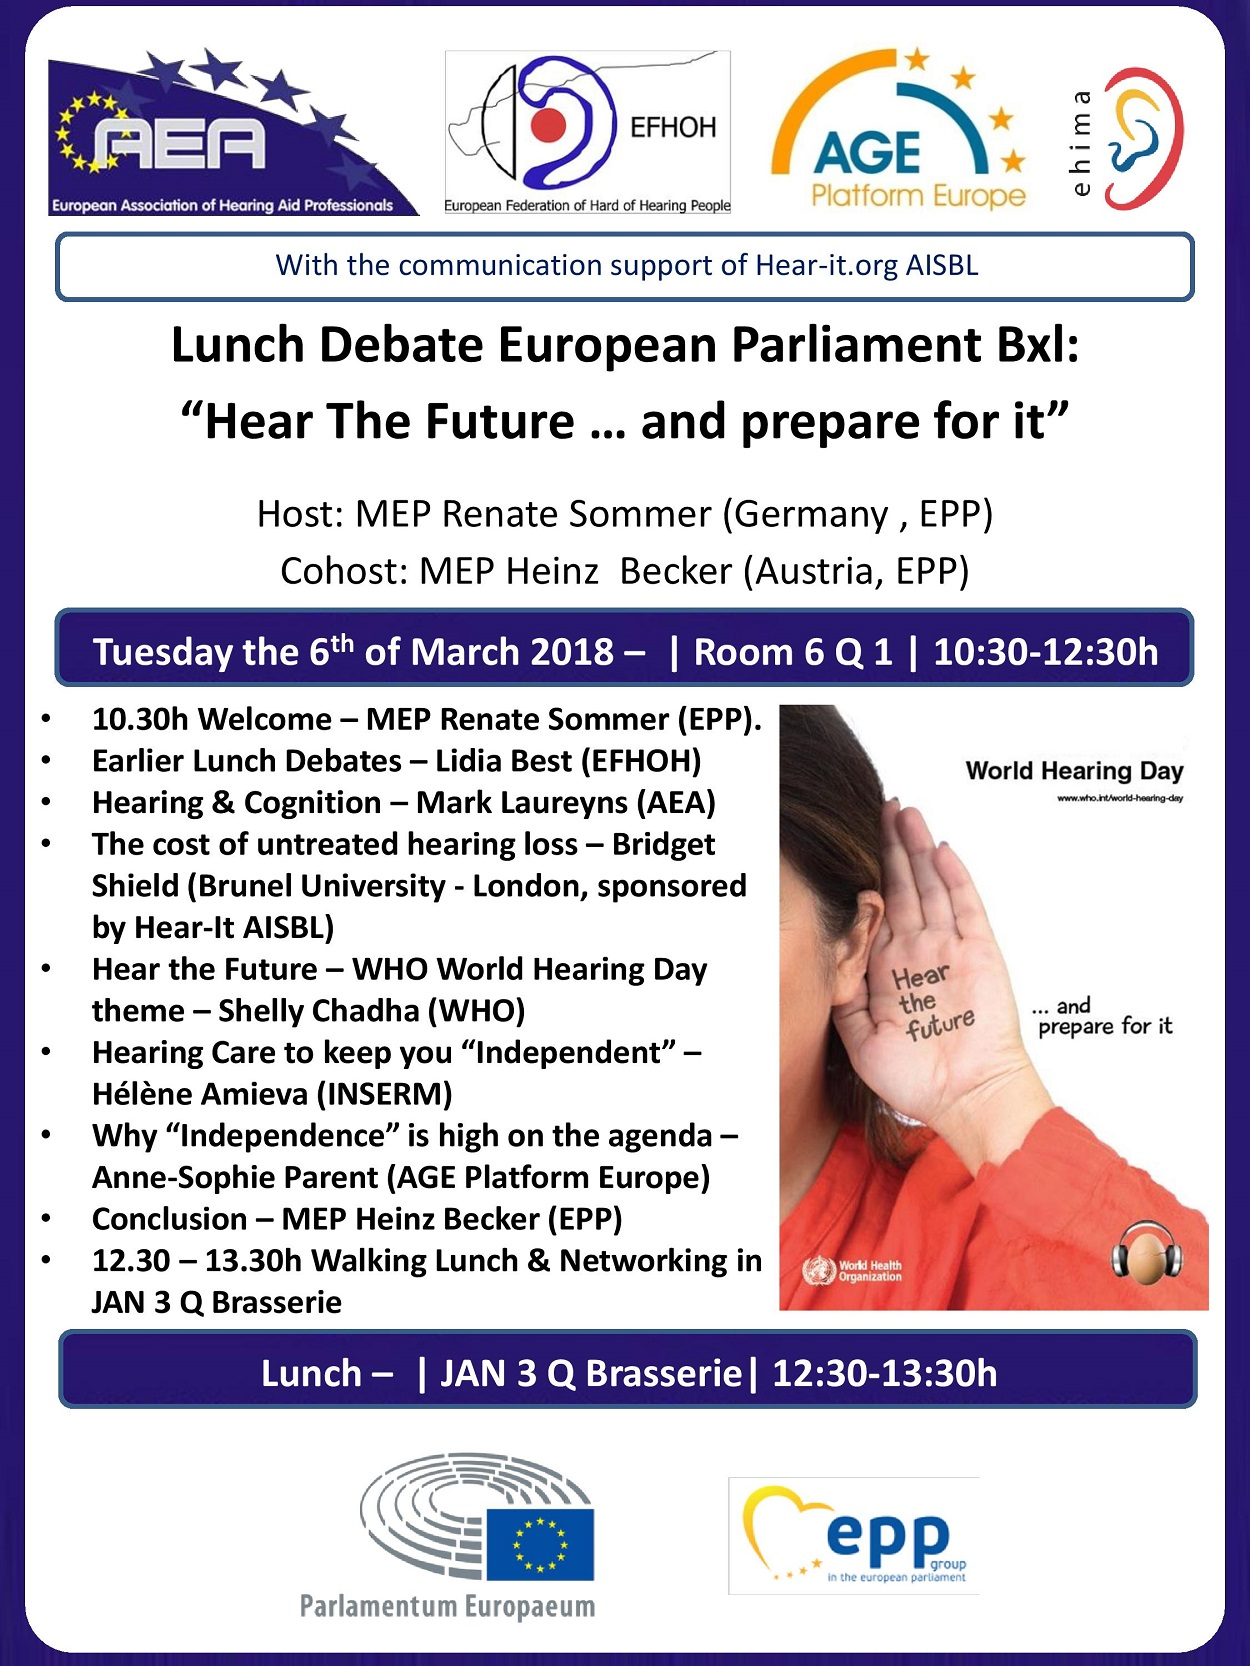 Lunch Debate European Parliament 2018 [Update]